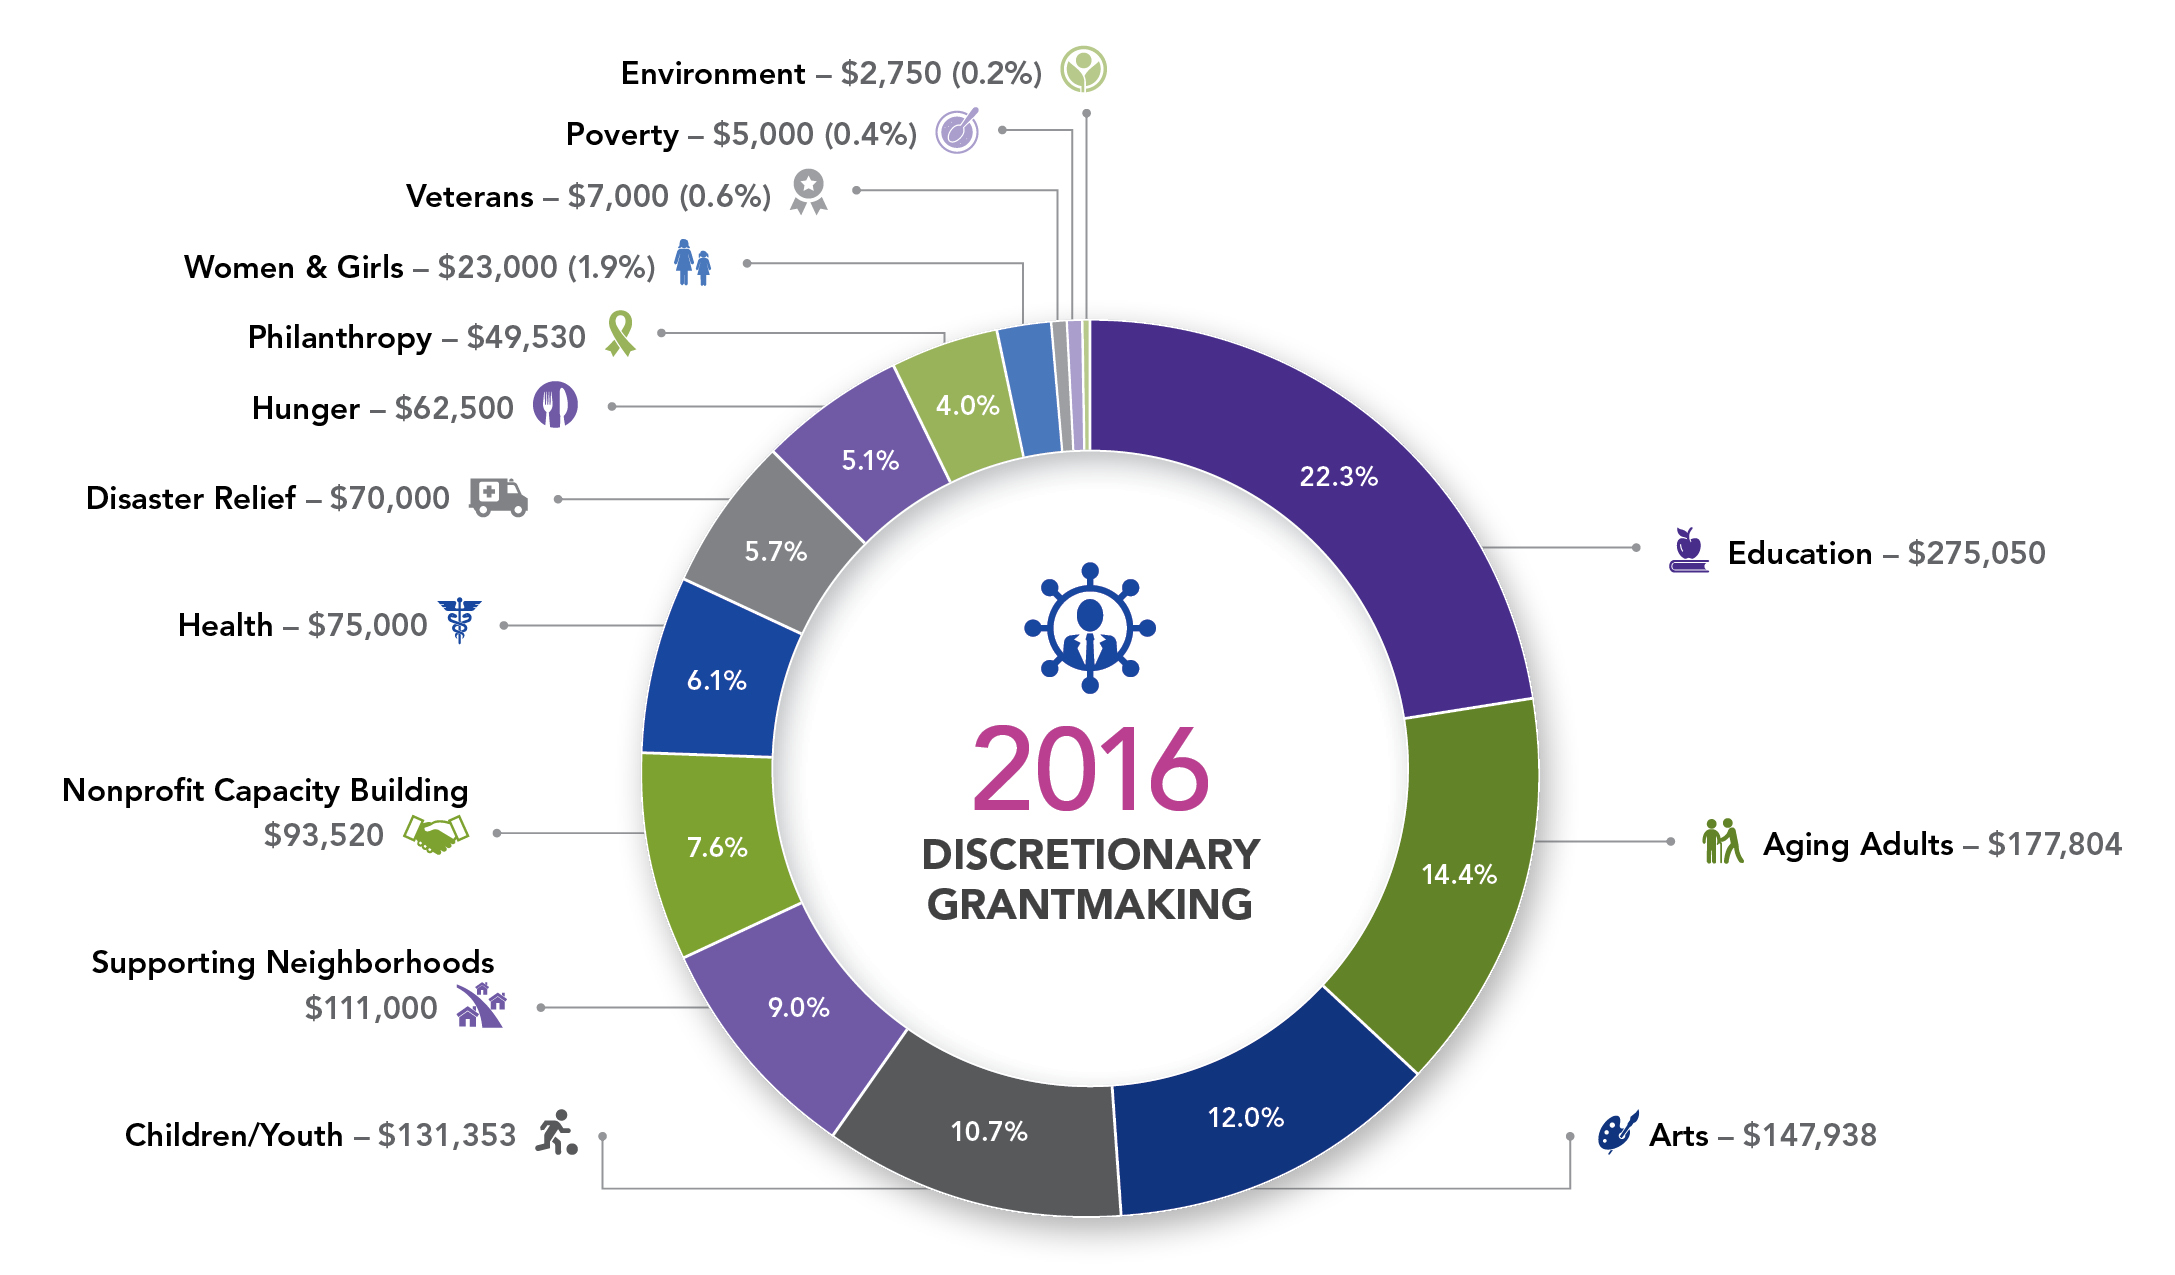 2016 Discretionary Grantmaking